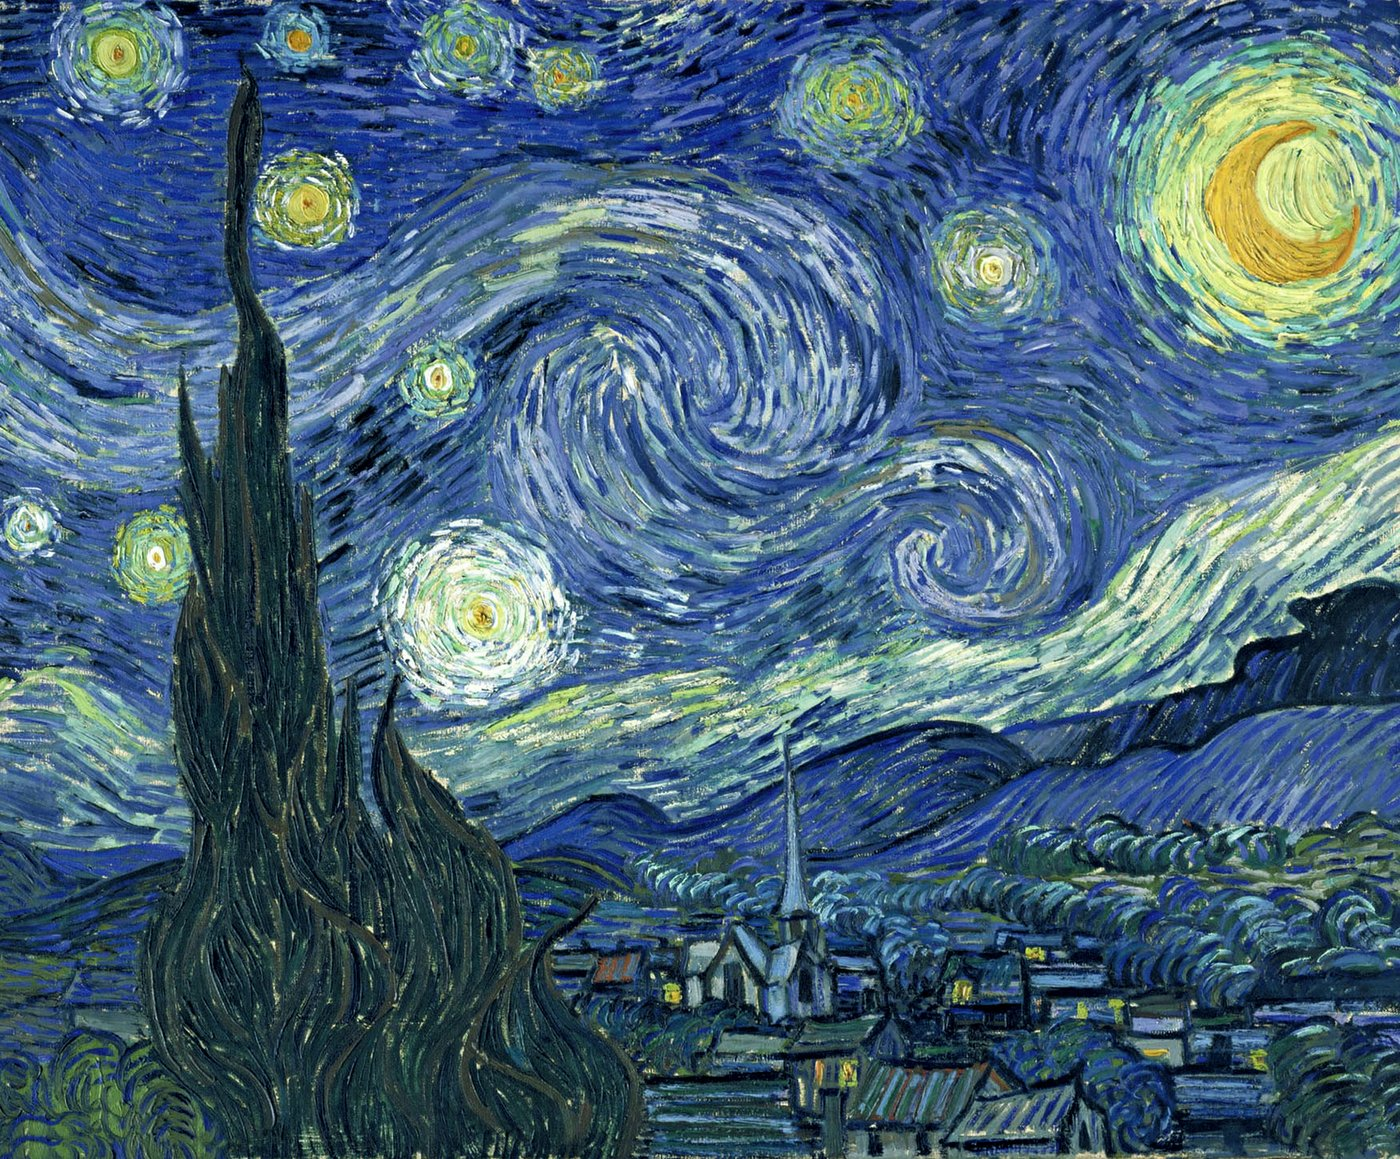 Vincent Van Gogh Painting Reproductions For Sale 1st Art Gallery